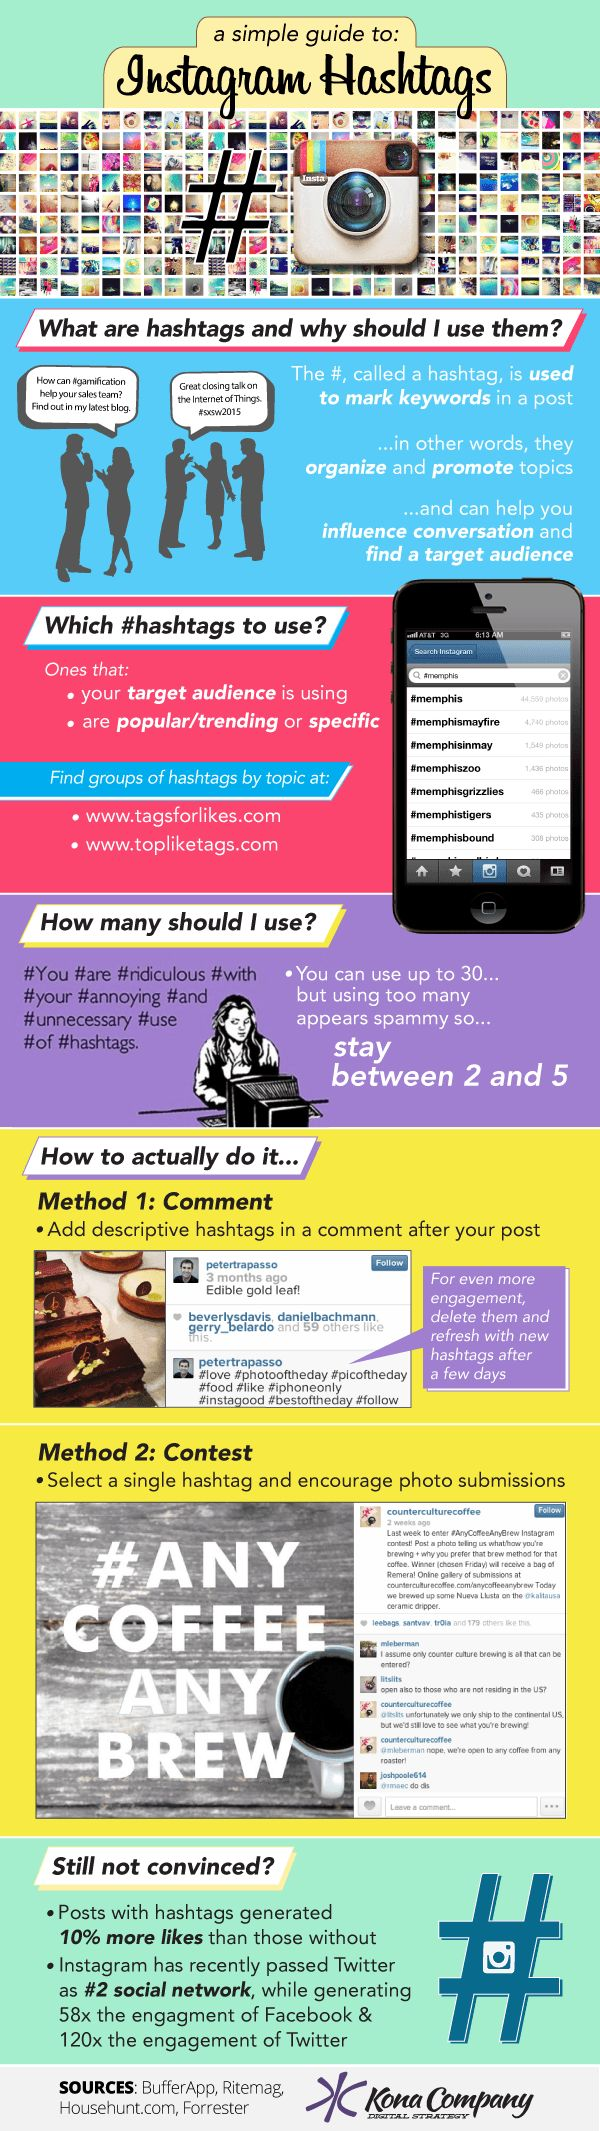 A Simple Guide to Instagram Hashtags